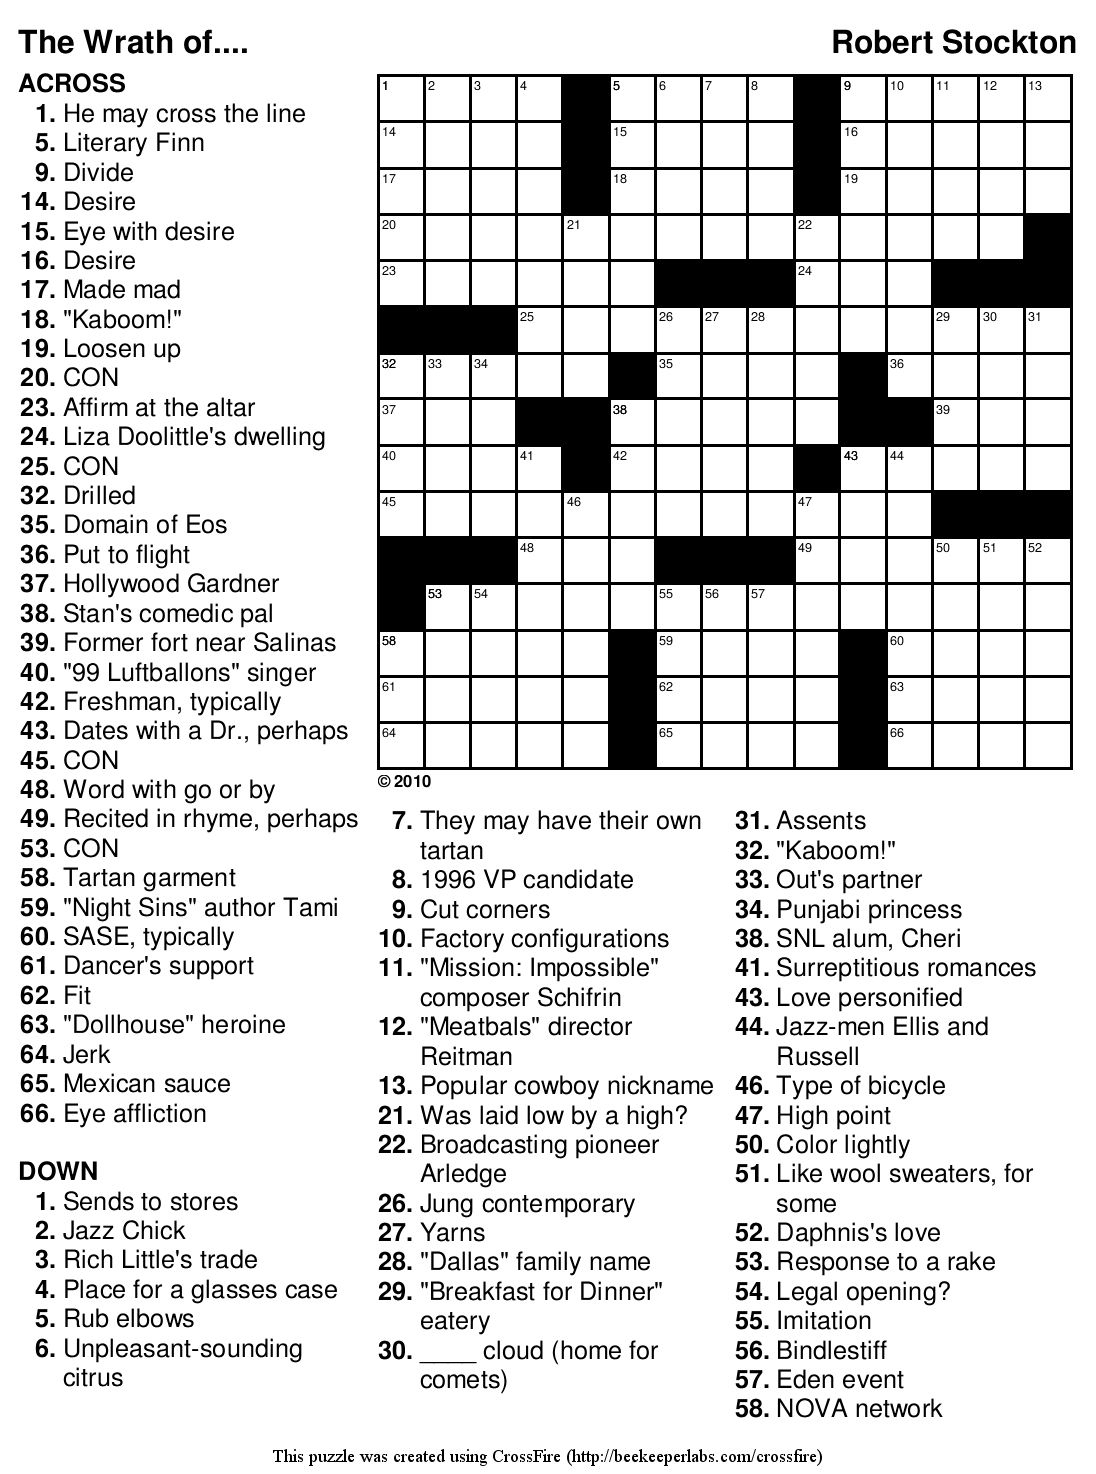 Marvelous Crossword Puzzles Easy Printable Free Org | Chas's Board - 15X15 Printable Crossword Puzzles